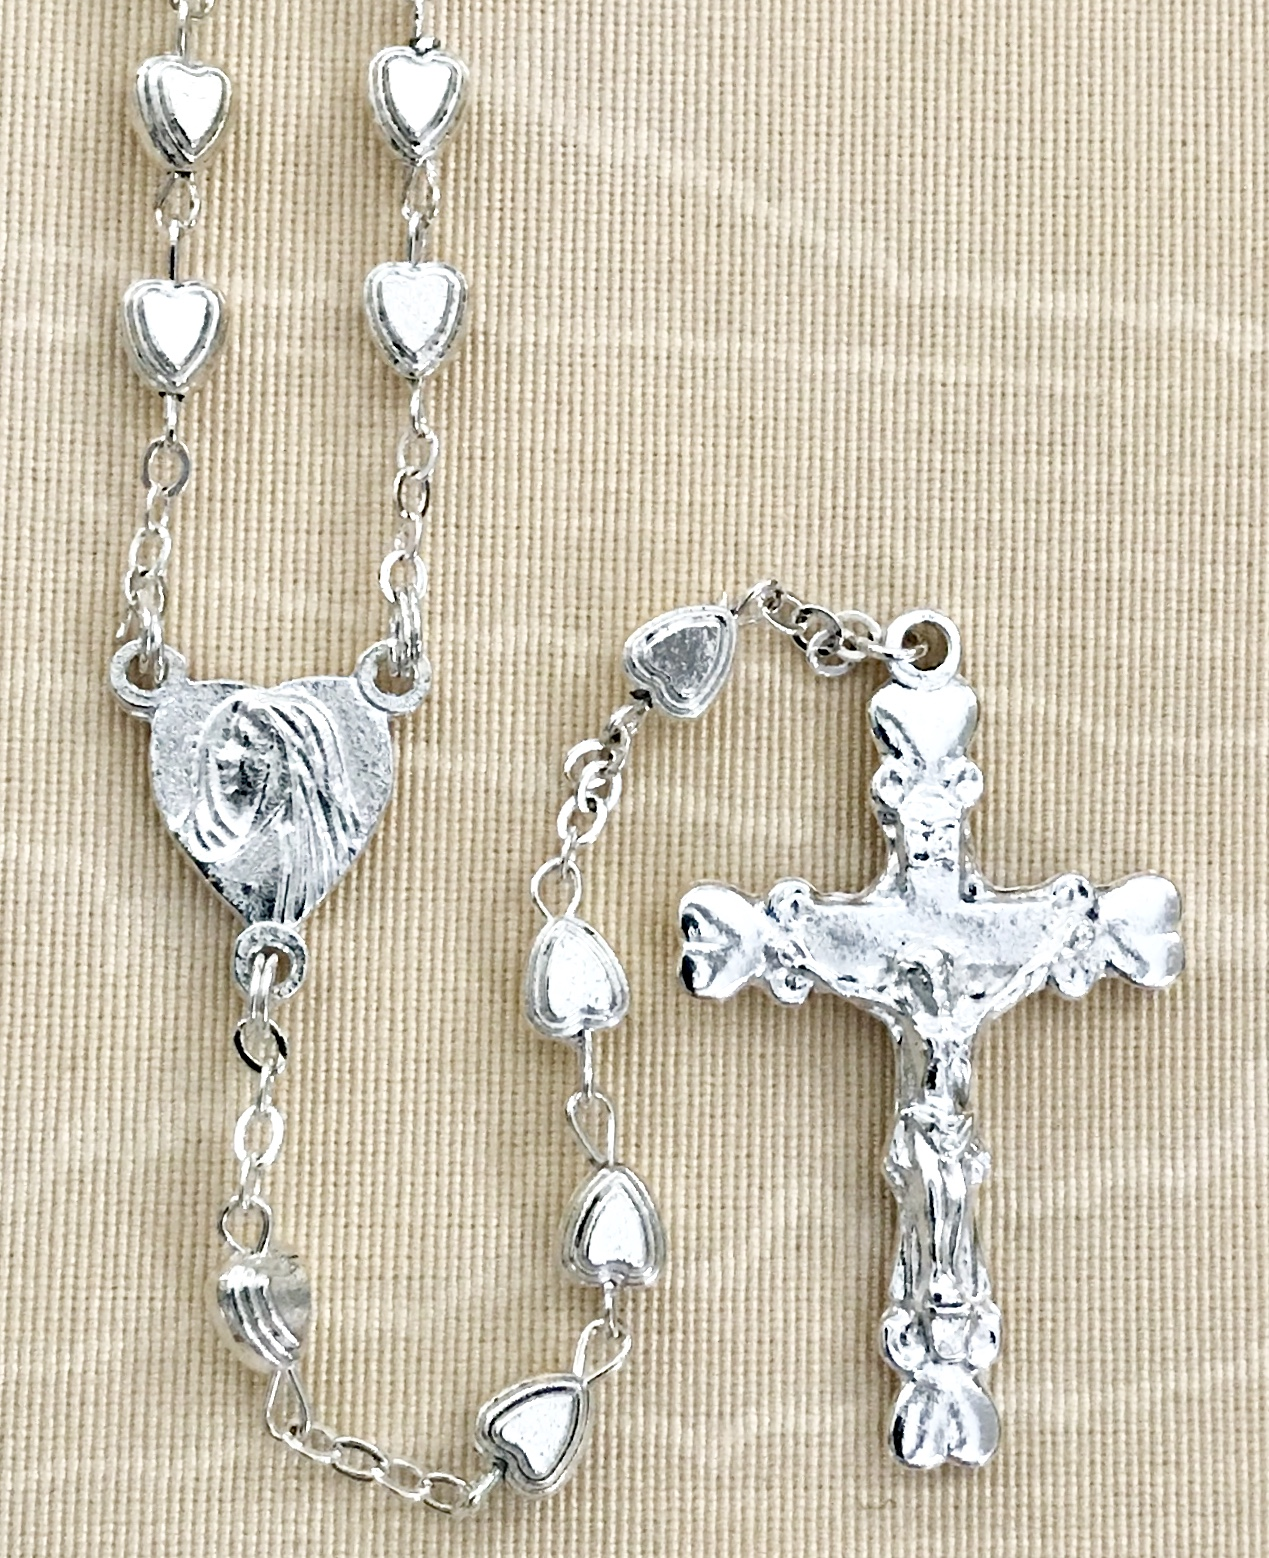 6x6mm HEART SHAPED SILVER ROSARY WITH STERLING SILVER PLATED CRUCIFIX AND CENTER GIFT BOXED